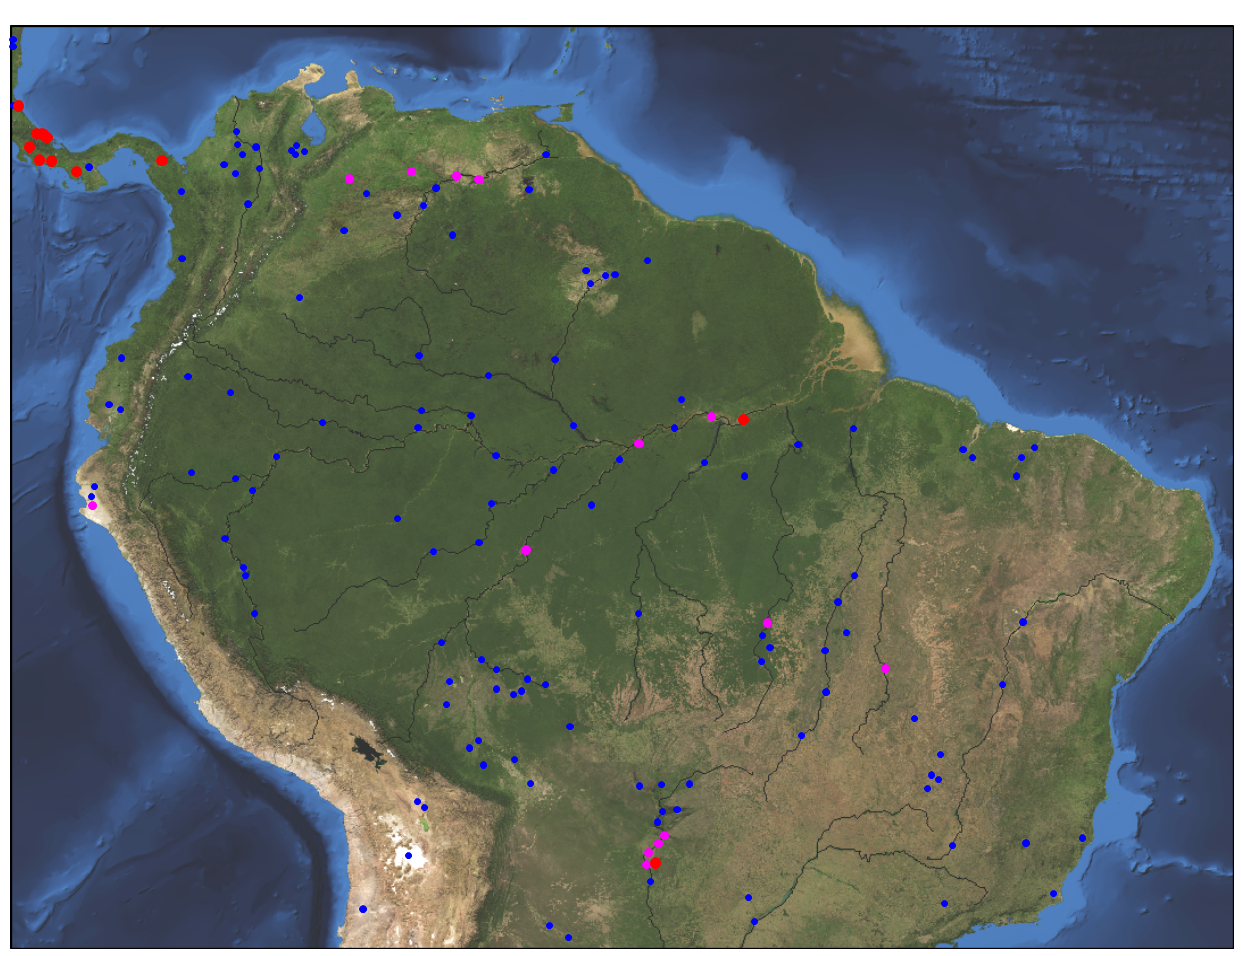 Northern South America RiverWatch on hd map of south america, precipitation of south america, labeled map of south america, physical features of south america, statistics of south america, google maps south america, physical map of south america, thematic map of south america, large map of south america, satellite maps of homes, north america, map of africa and south america, satellite maps of usa, complete map of south america, blank outline map of south america, a blank map of south america, full map of south america, current map of south america, google earth south america, topographic map of south america,